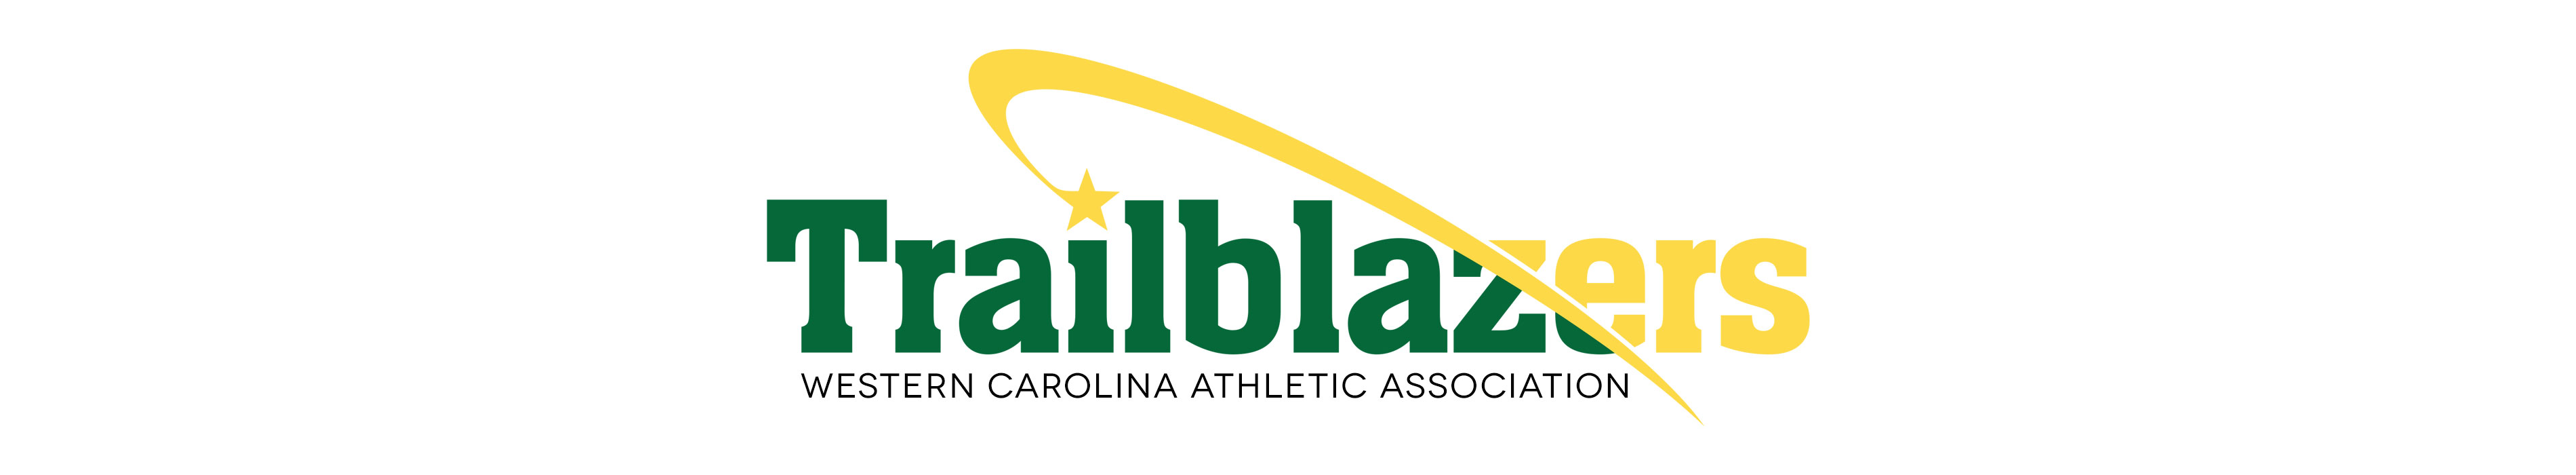 WCAA - Asheville Trailblazers